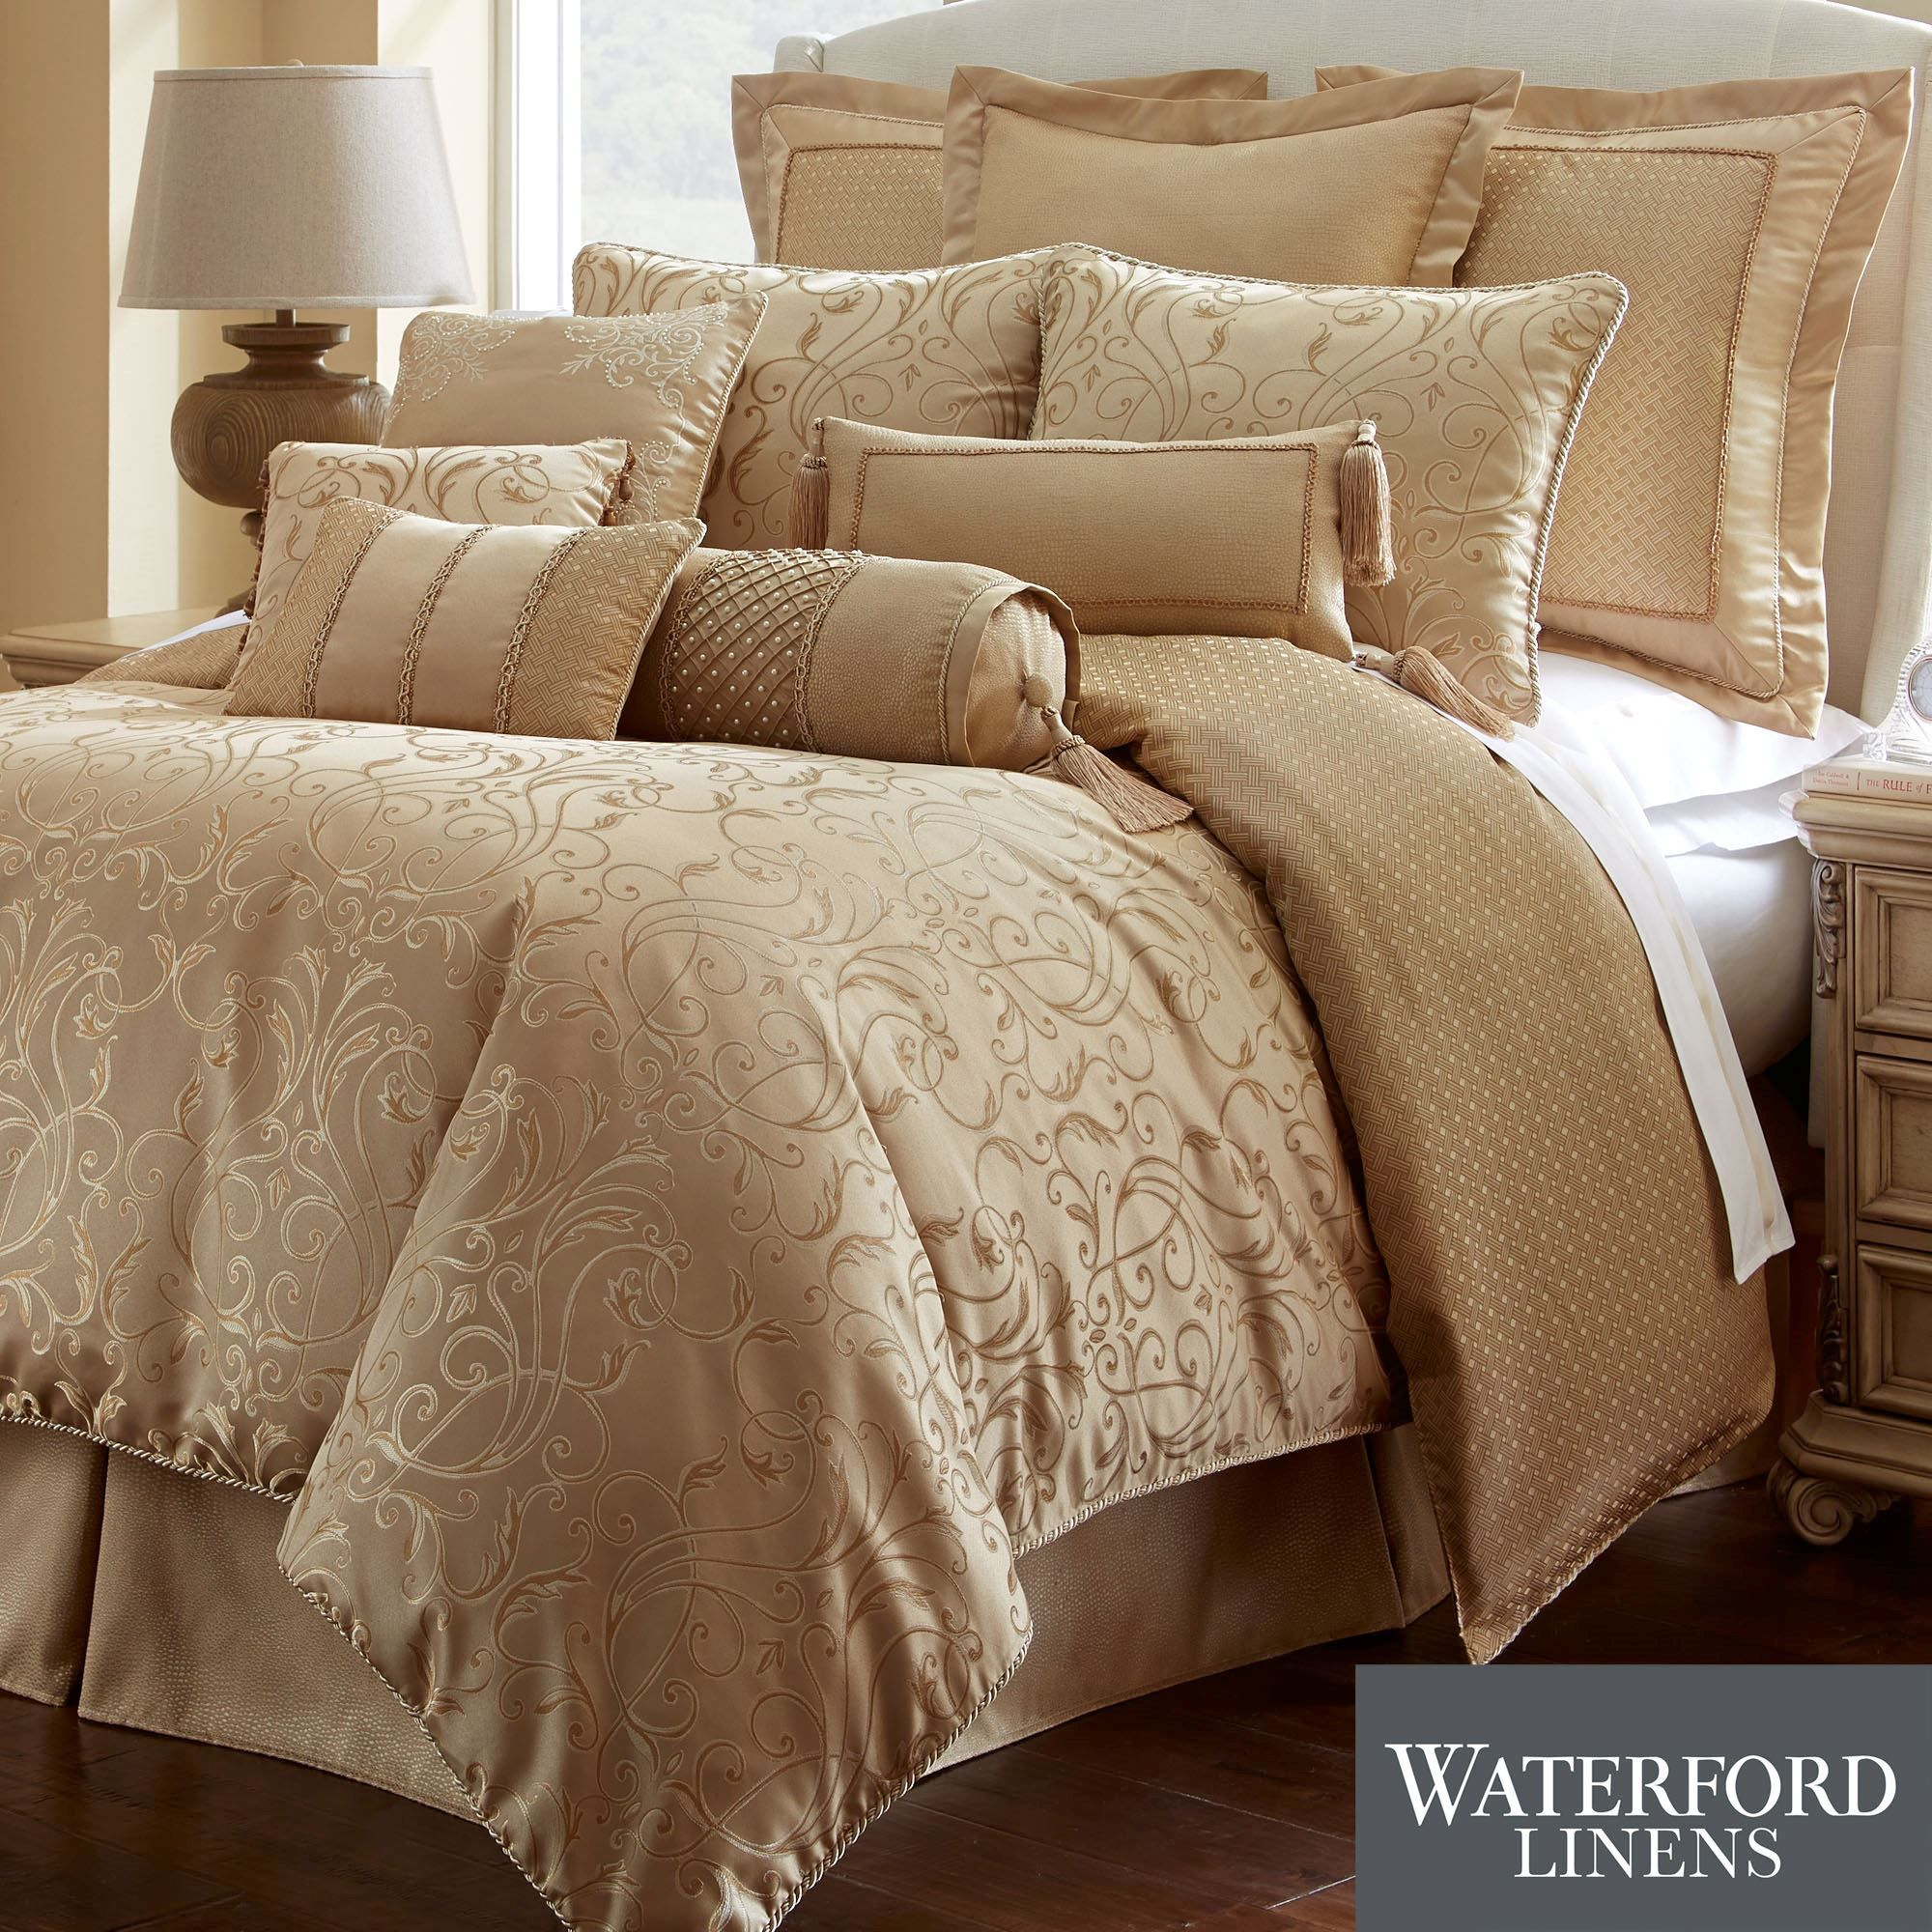 lynath gold comforter bedding by waterford linens  gold comforter  - lynath gold comforter bedding by waterford linens